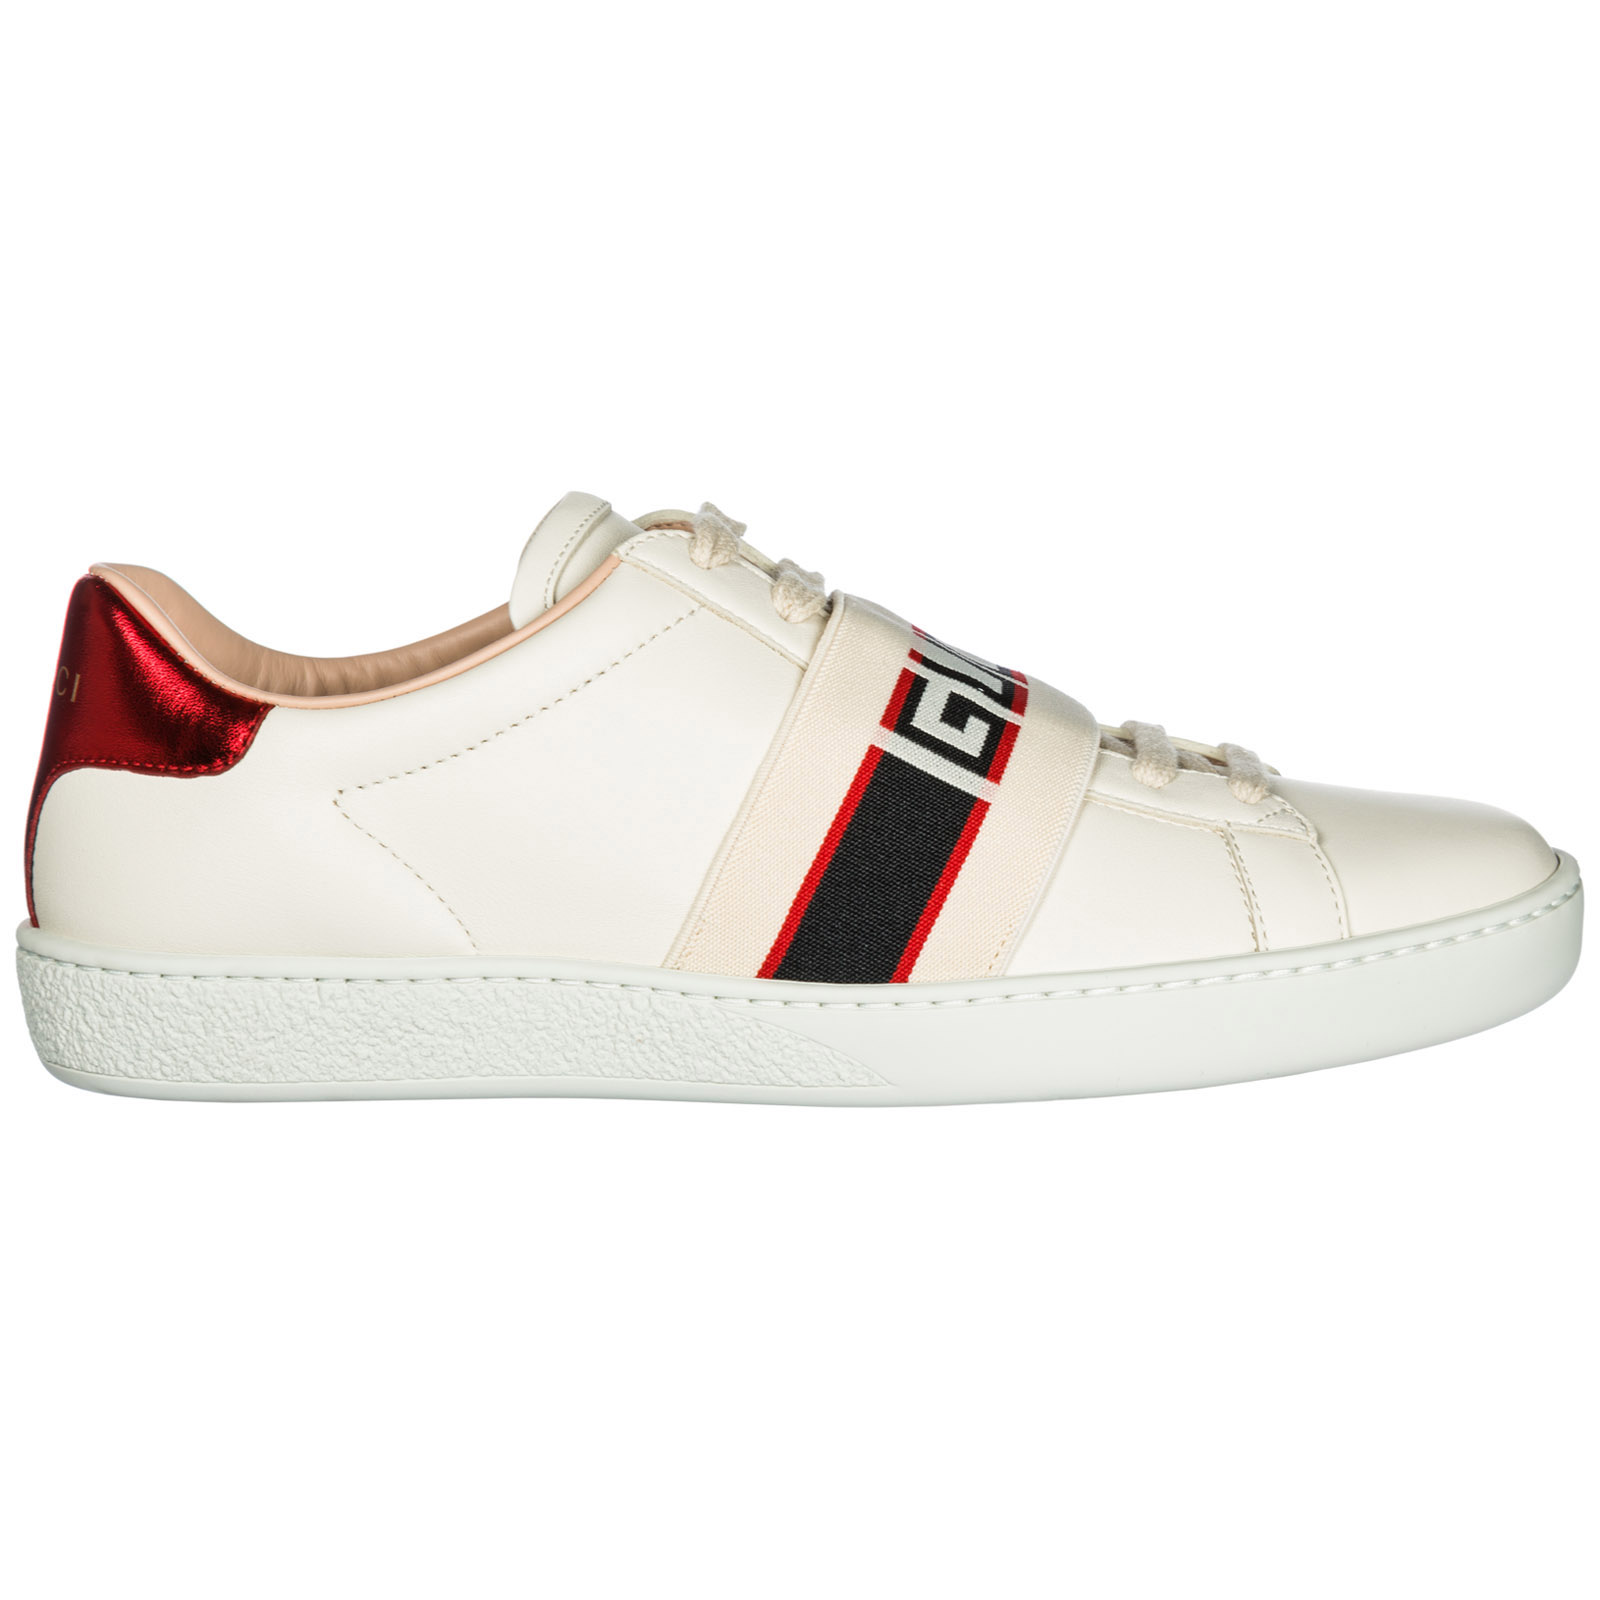 Sneakers Gucci Ace 525269 0FIV0 9086 bianco  3af9565d5574